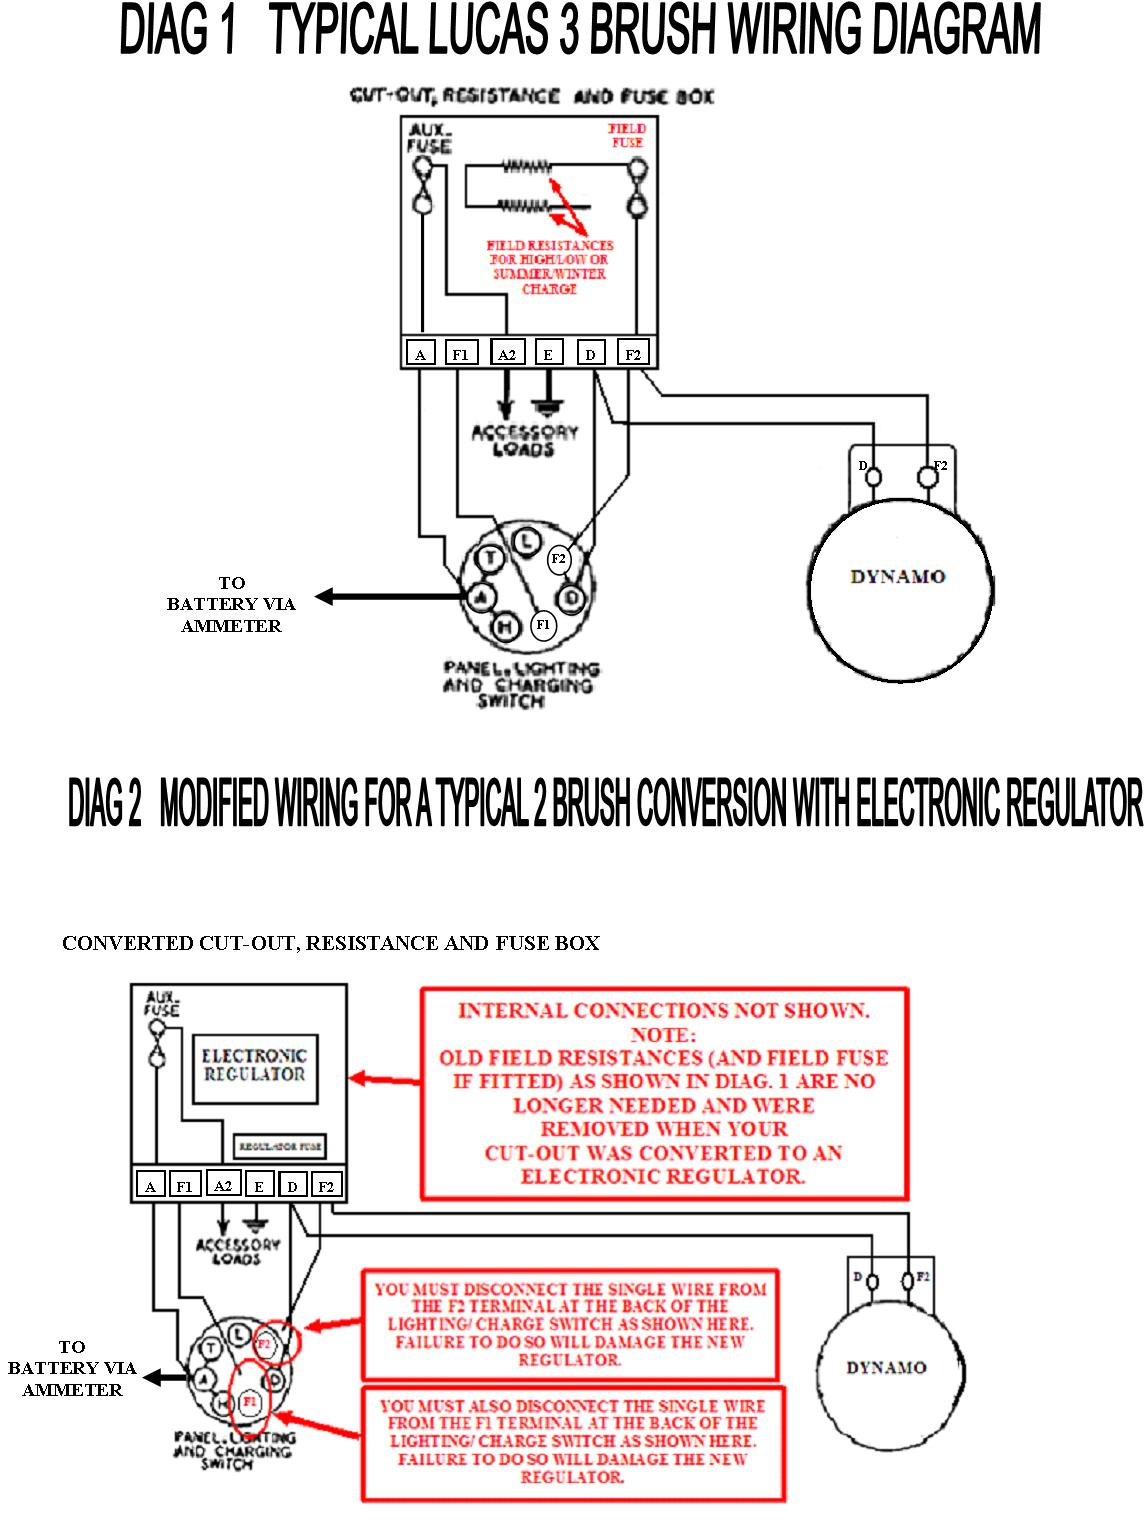 dynamo to alternator conversion wiring diagram 1976 honda cb750f lucas 3 brush dynamos mig welding forum